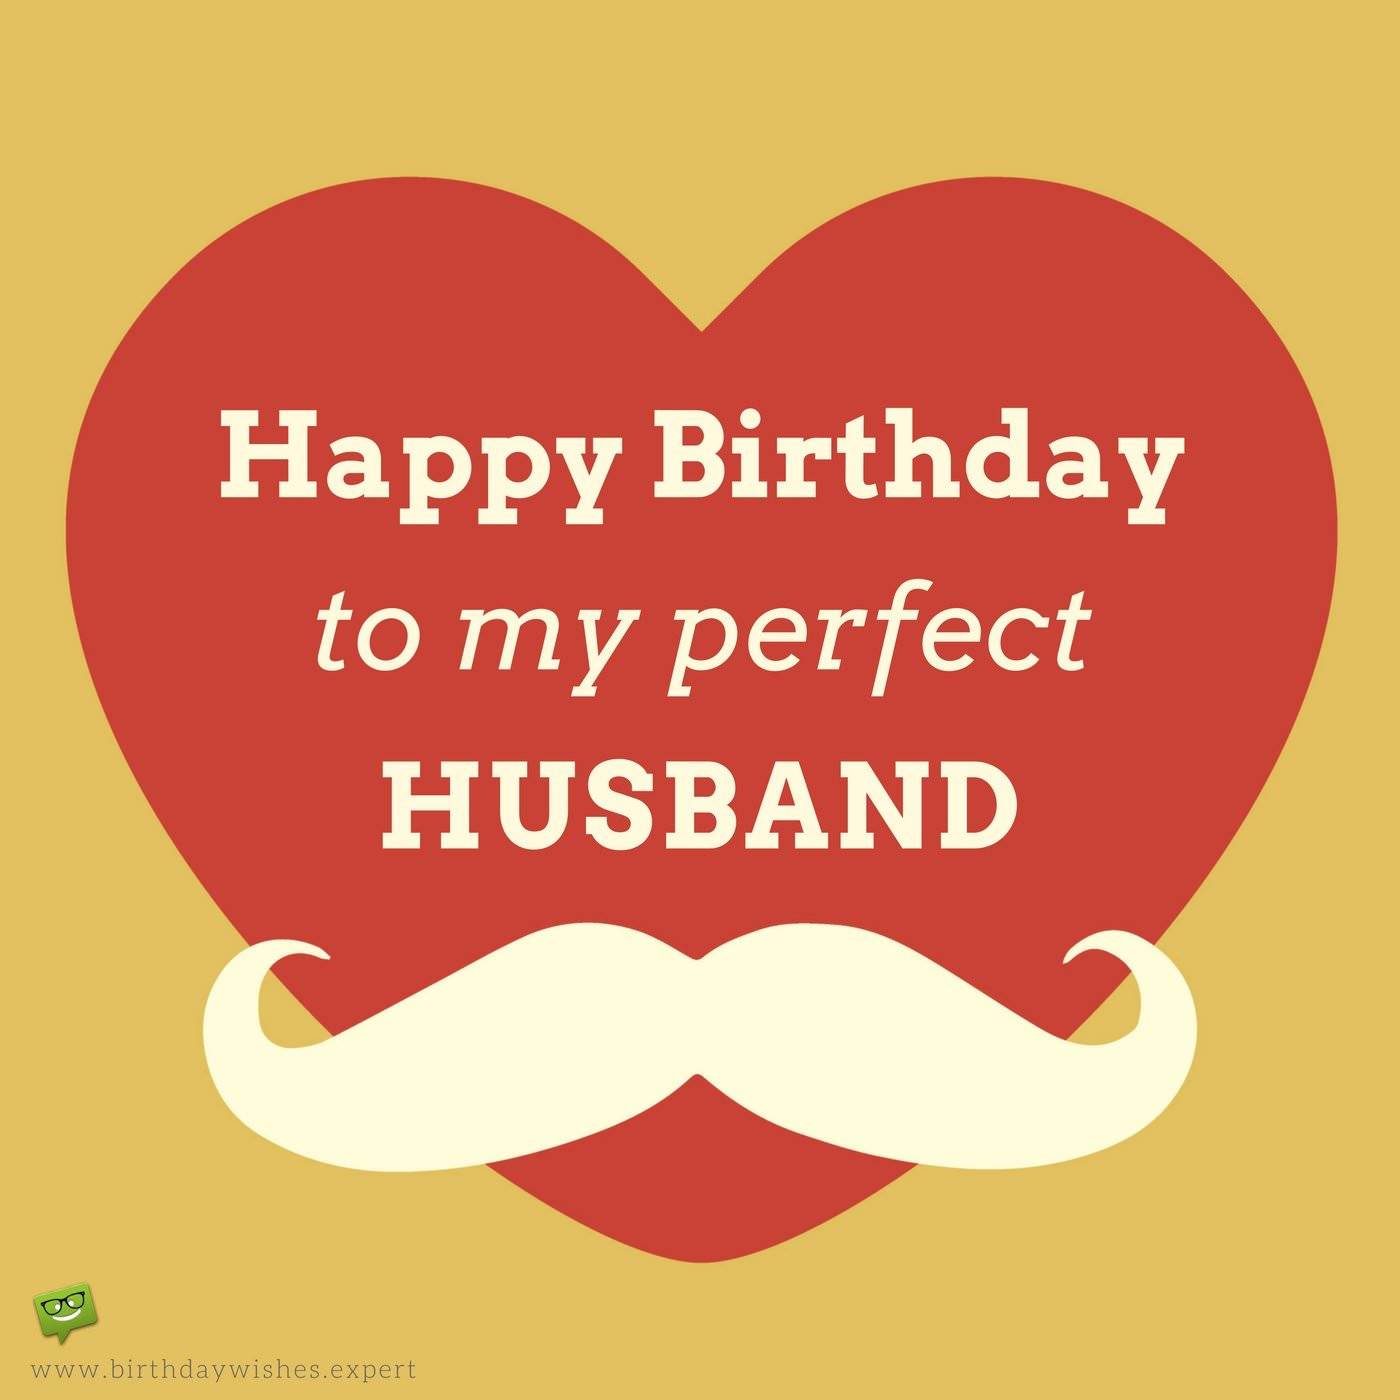 Best ideas about Happy Birthday Wishes To My Husband . Save or Pin Original Birthday Quotes for your Husband Now.